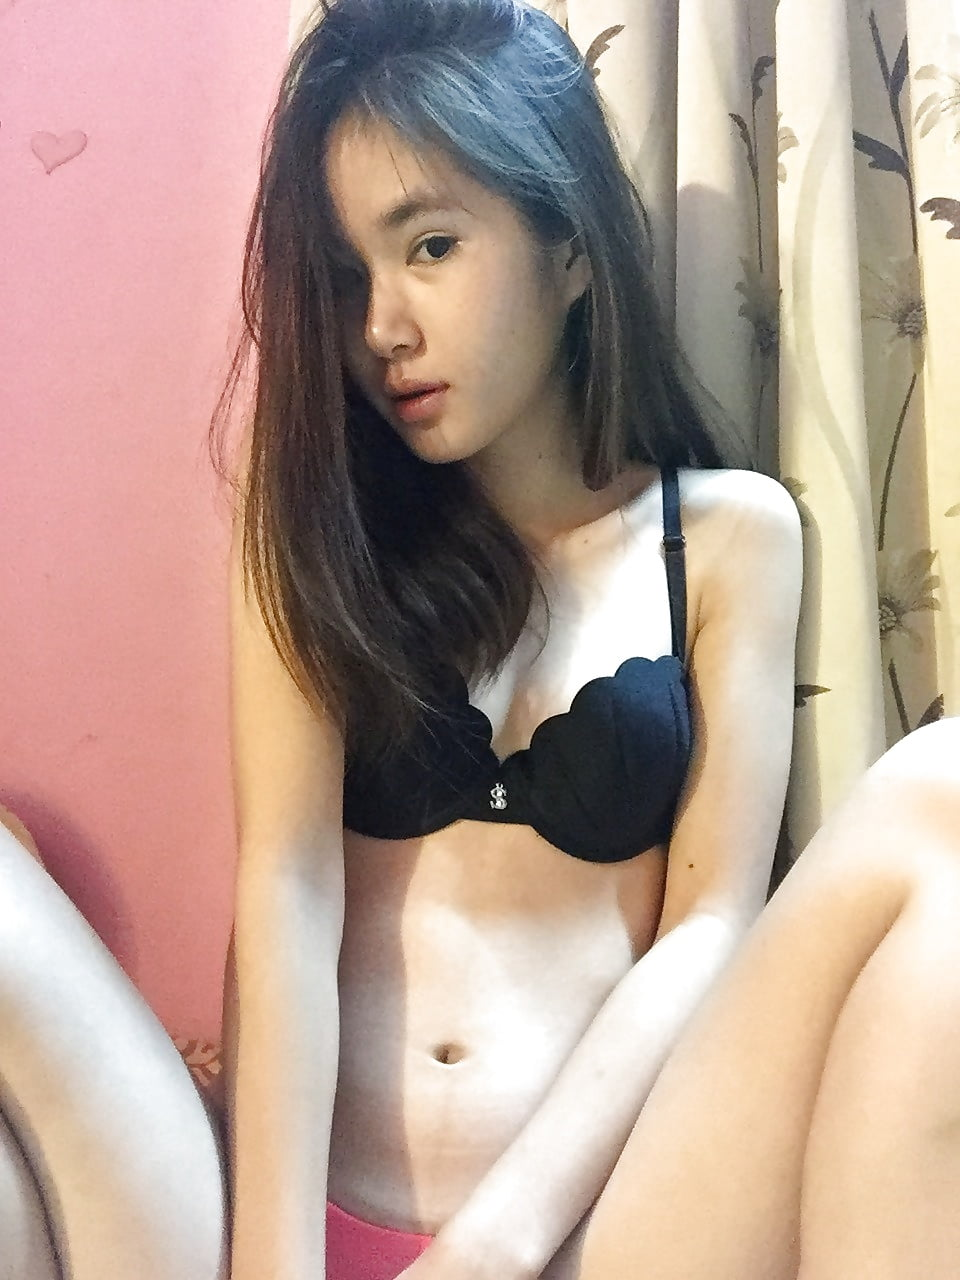 Naked asian gallery